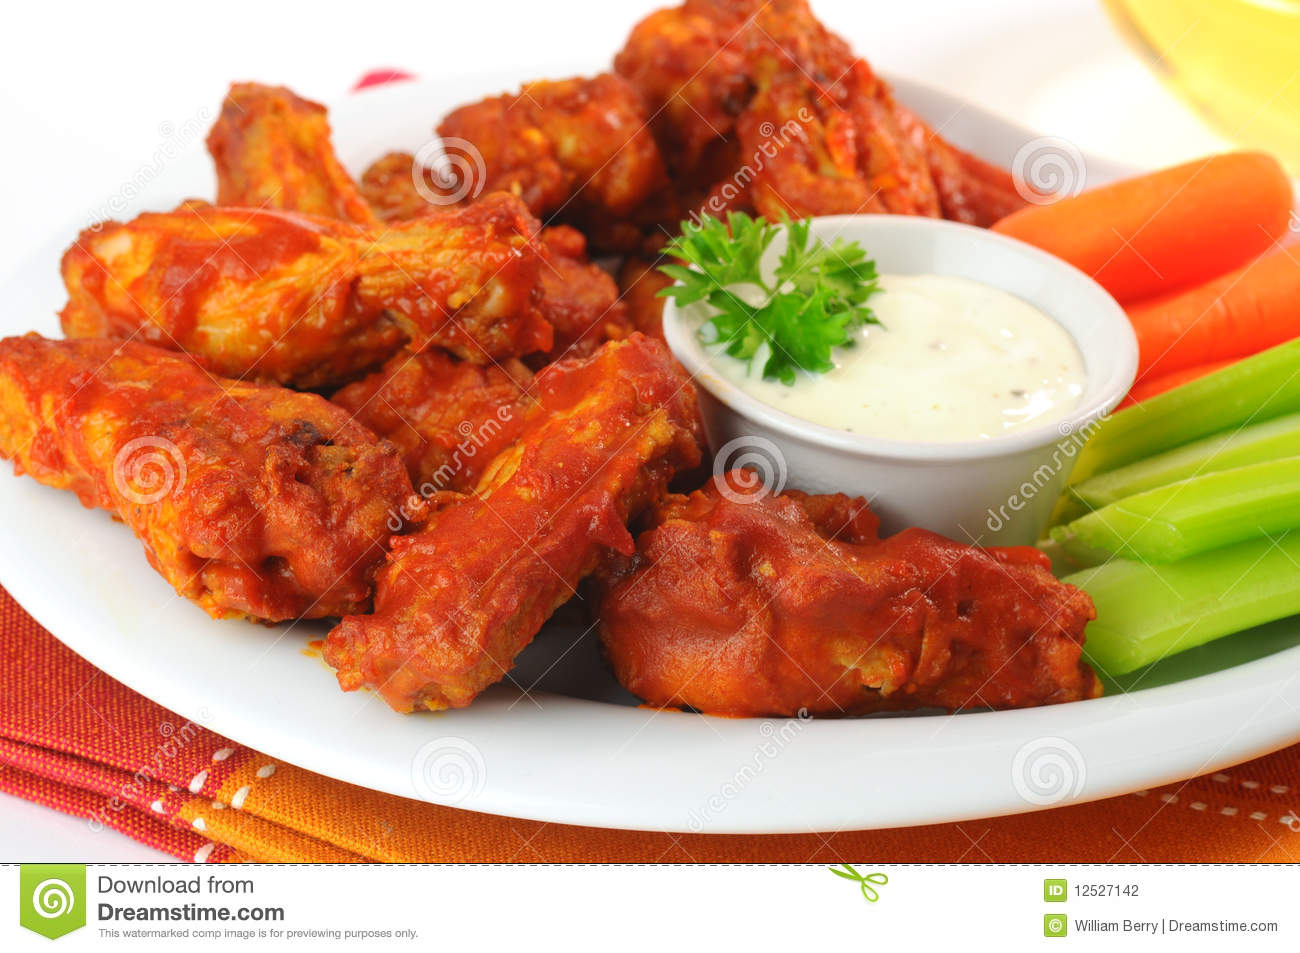 SPICY BUFFALO STYLE WINGS | Eat and Exercise